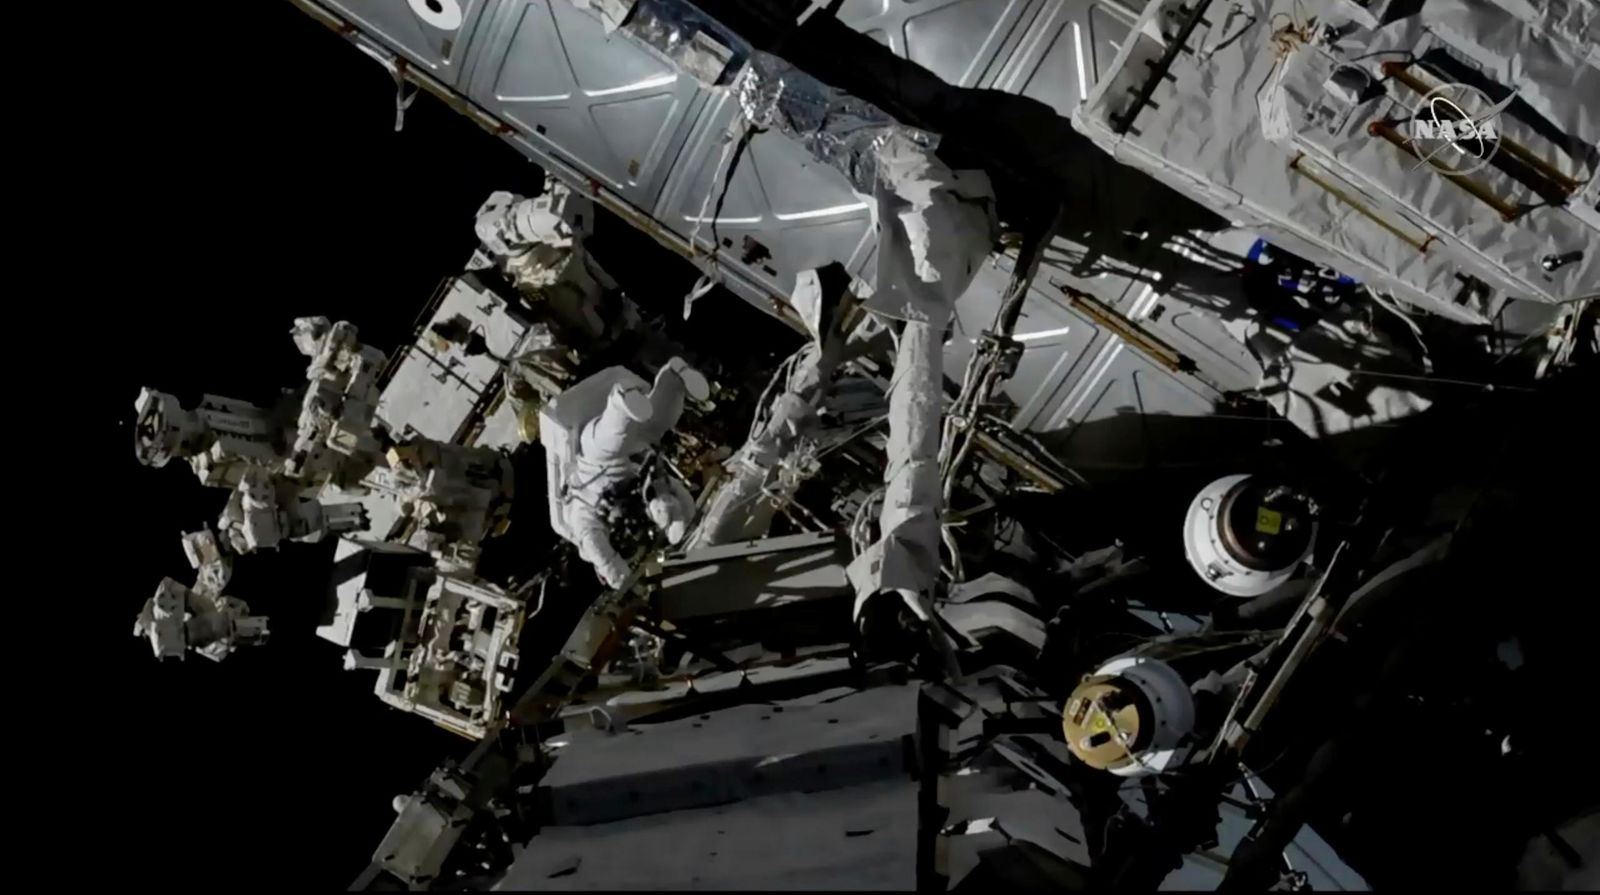 In this photo provided by NASA, Canadian astronaut David Saint-Jacques, center left, works outside the International Space Station, Monday, April 8, 2019. s the third spacewalk in just 2 ½ weeks for the station crew. (NASA via AP)